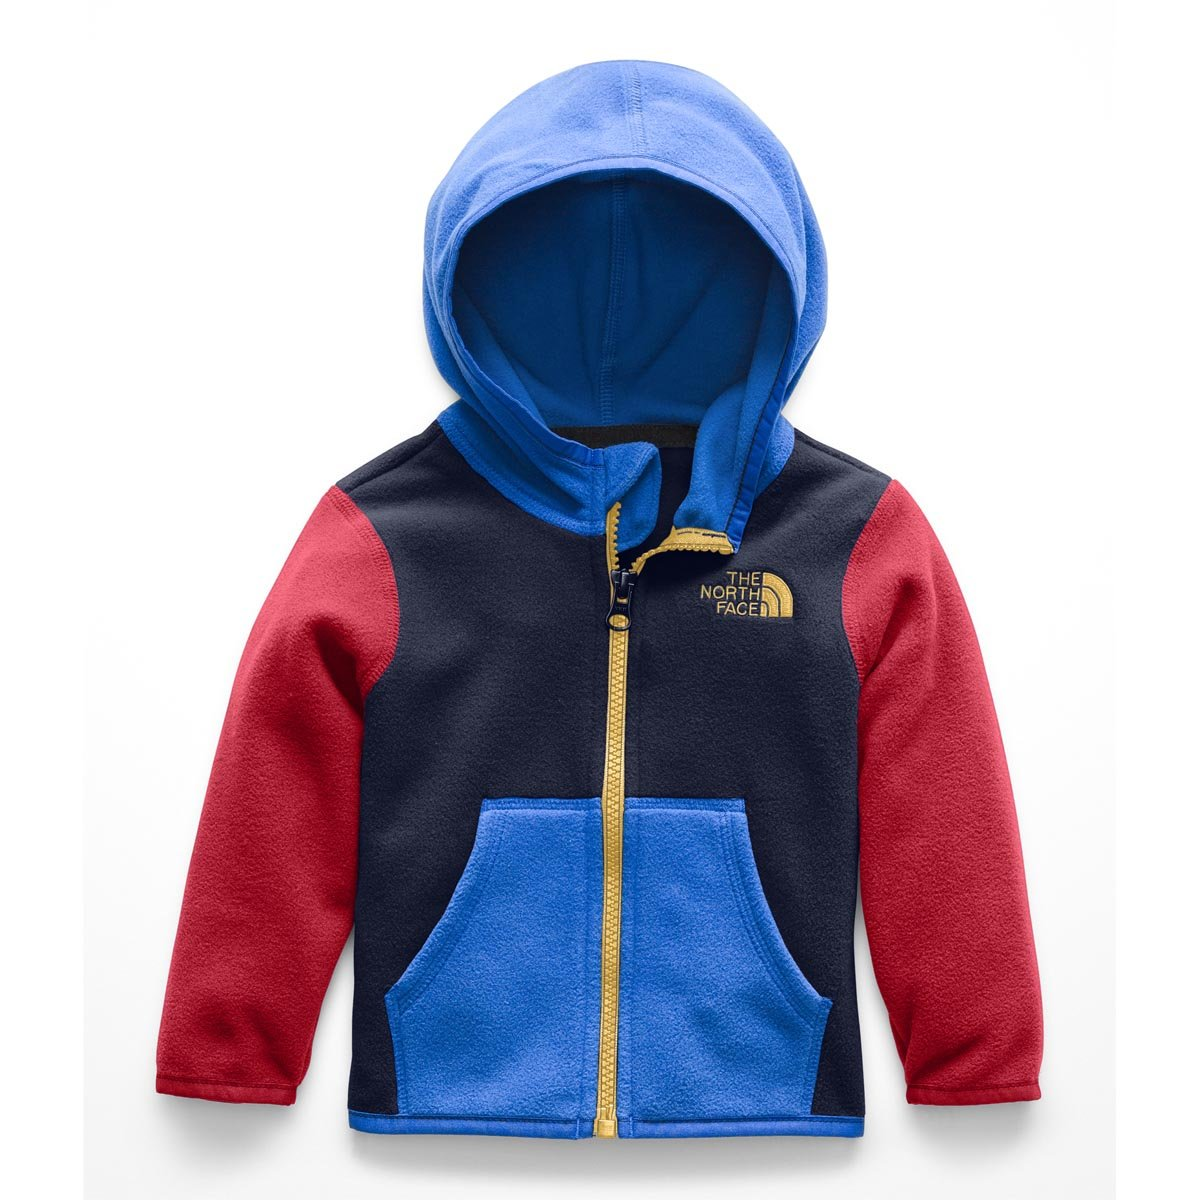 The North Face Kids Baby Girl's Glacier Full Zip Hoodie (Infant) Cosmic Blue/Turkish Red 6-12 Months